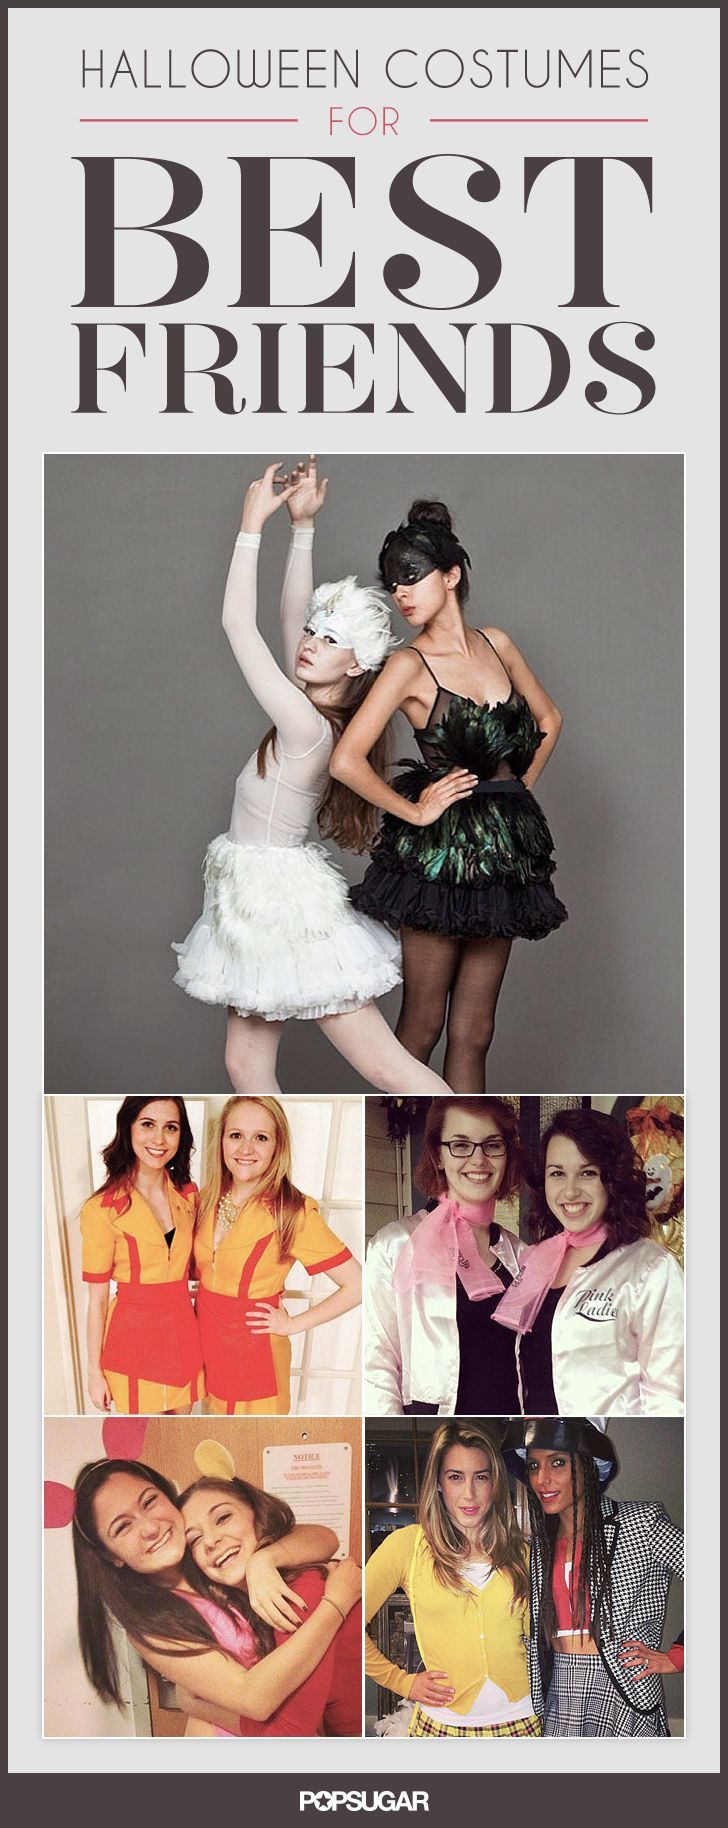 54 best Group Costume Ideas for Halloween images on Pinterest